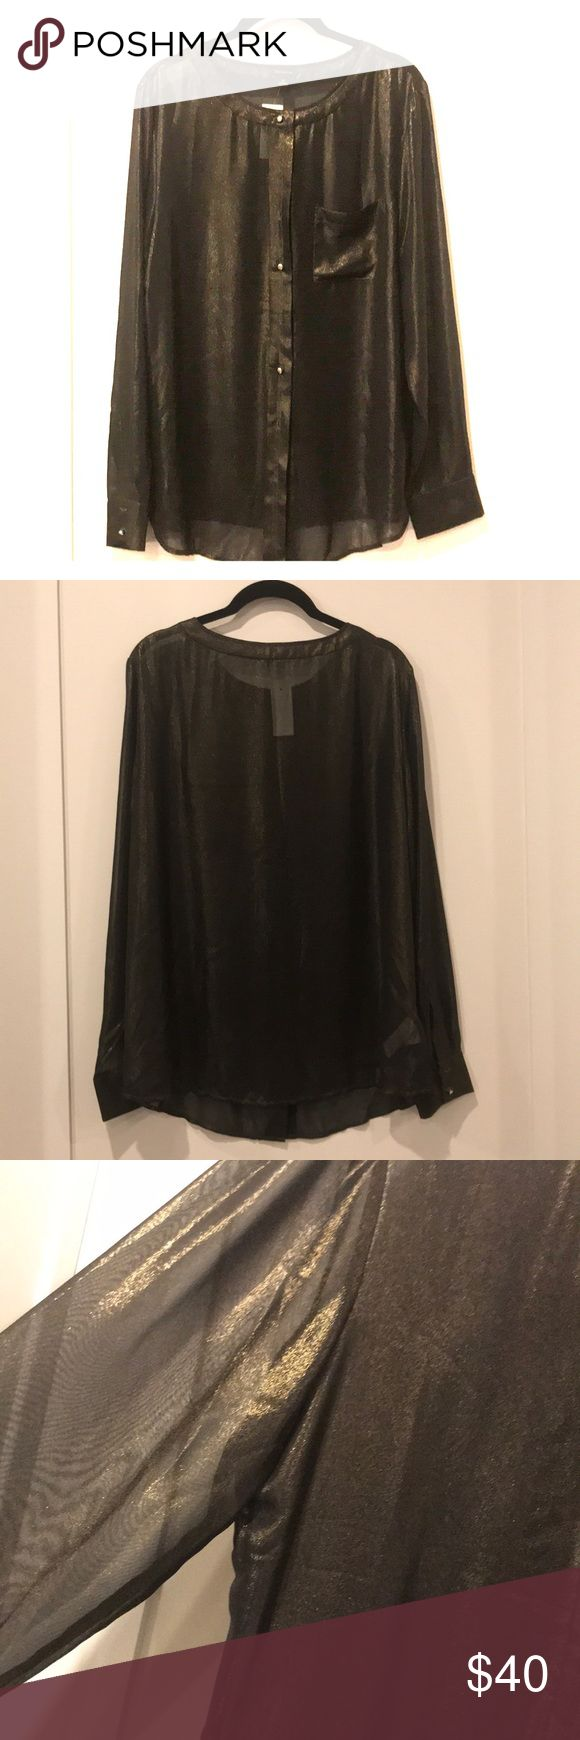 Sheer black & gold button down blouse Sheer, black & gold, button down, long sleeved shimmery blouse. Perfect sparkly blouse for a night out or for the Holidays! NWT. Ann Taylor Tops Blouses